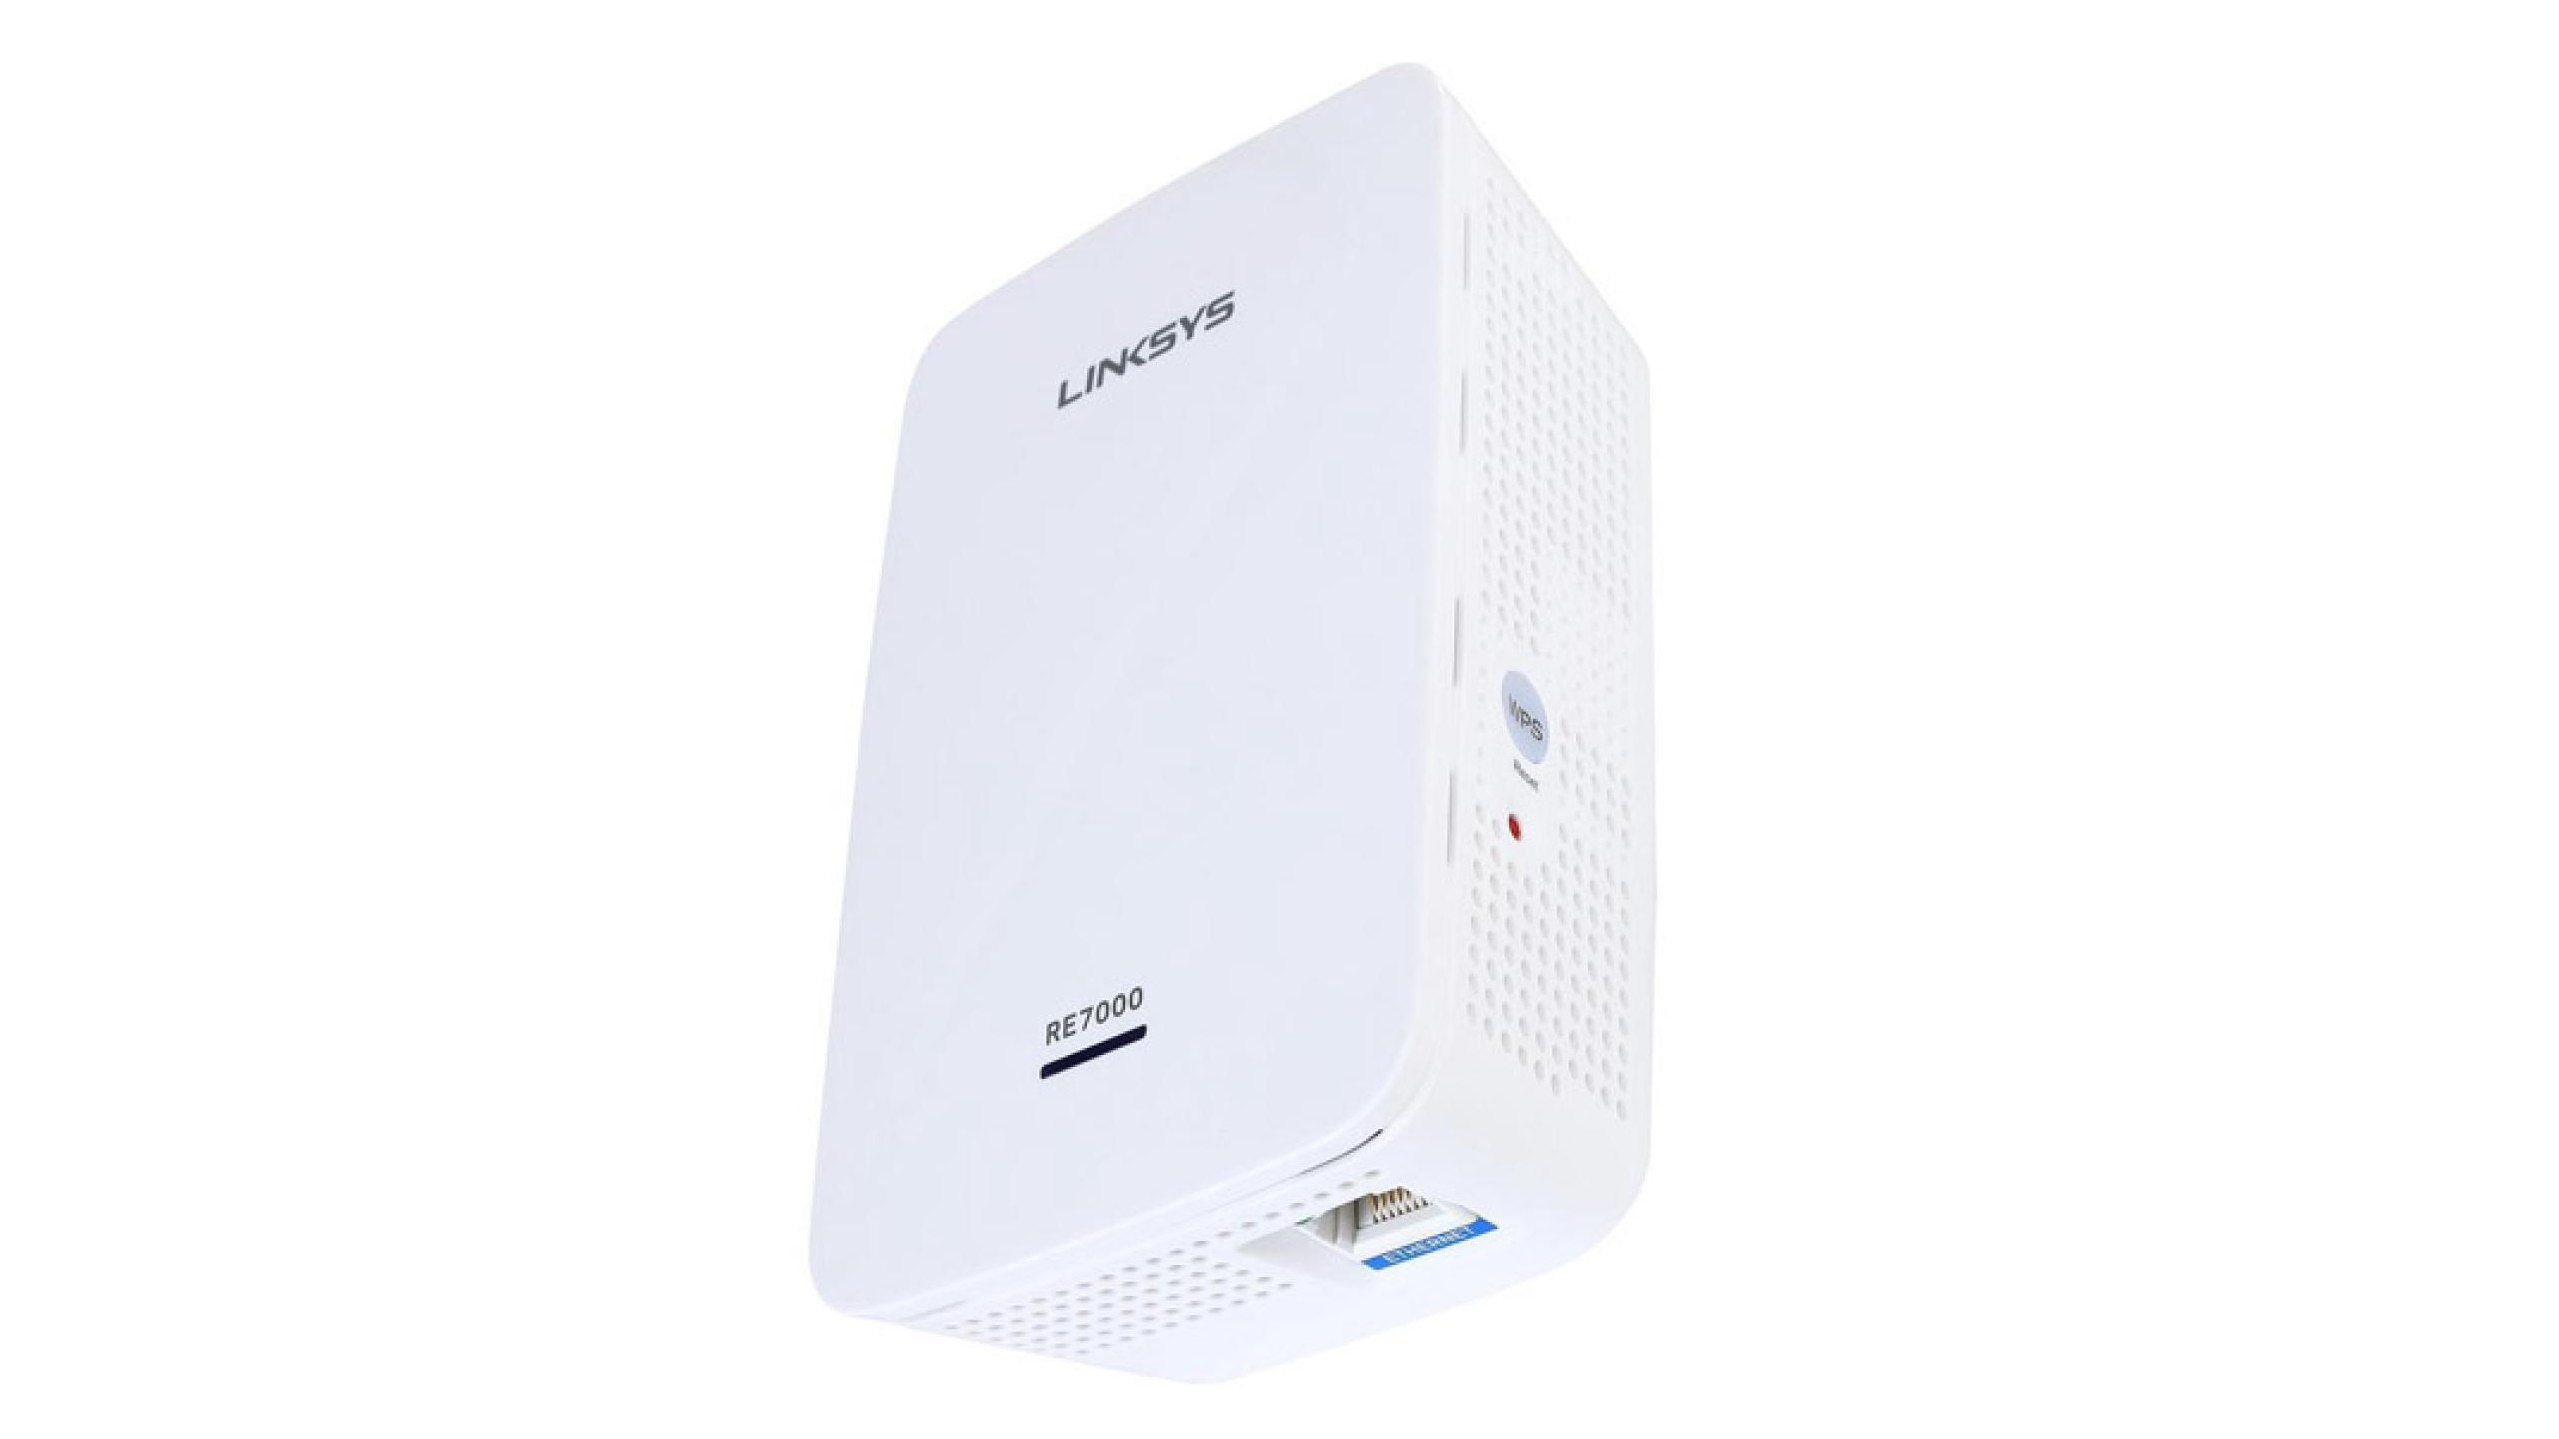 Linksys RE7000 Max-Stream AC1900+ from a side angle on a background